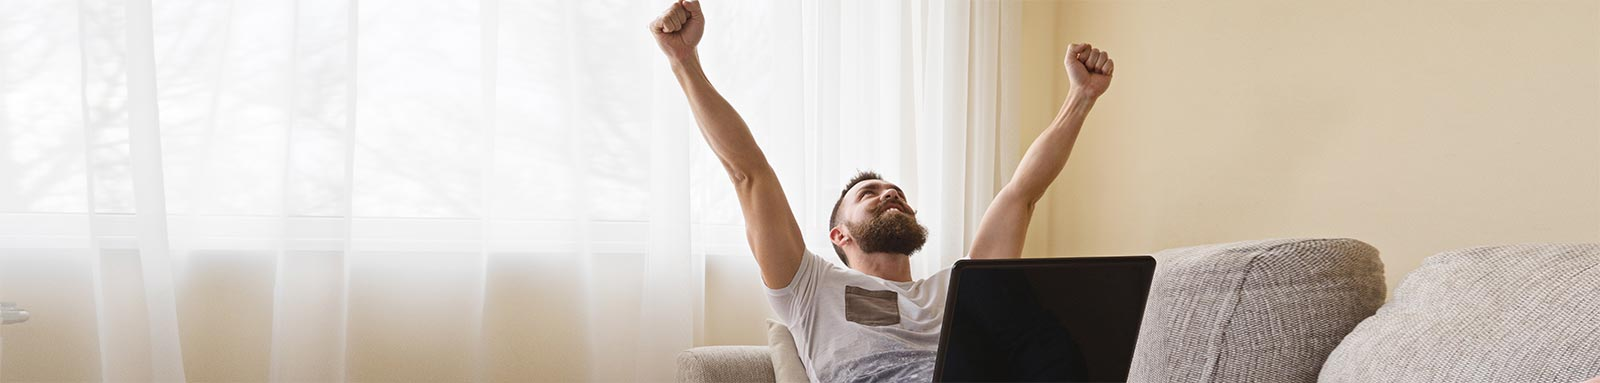 Happy freelancer celebrating on couch